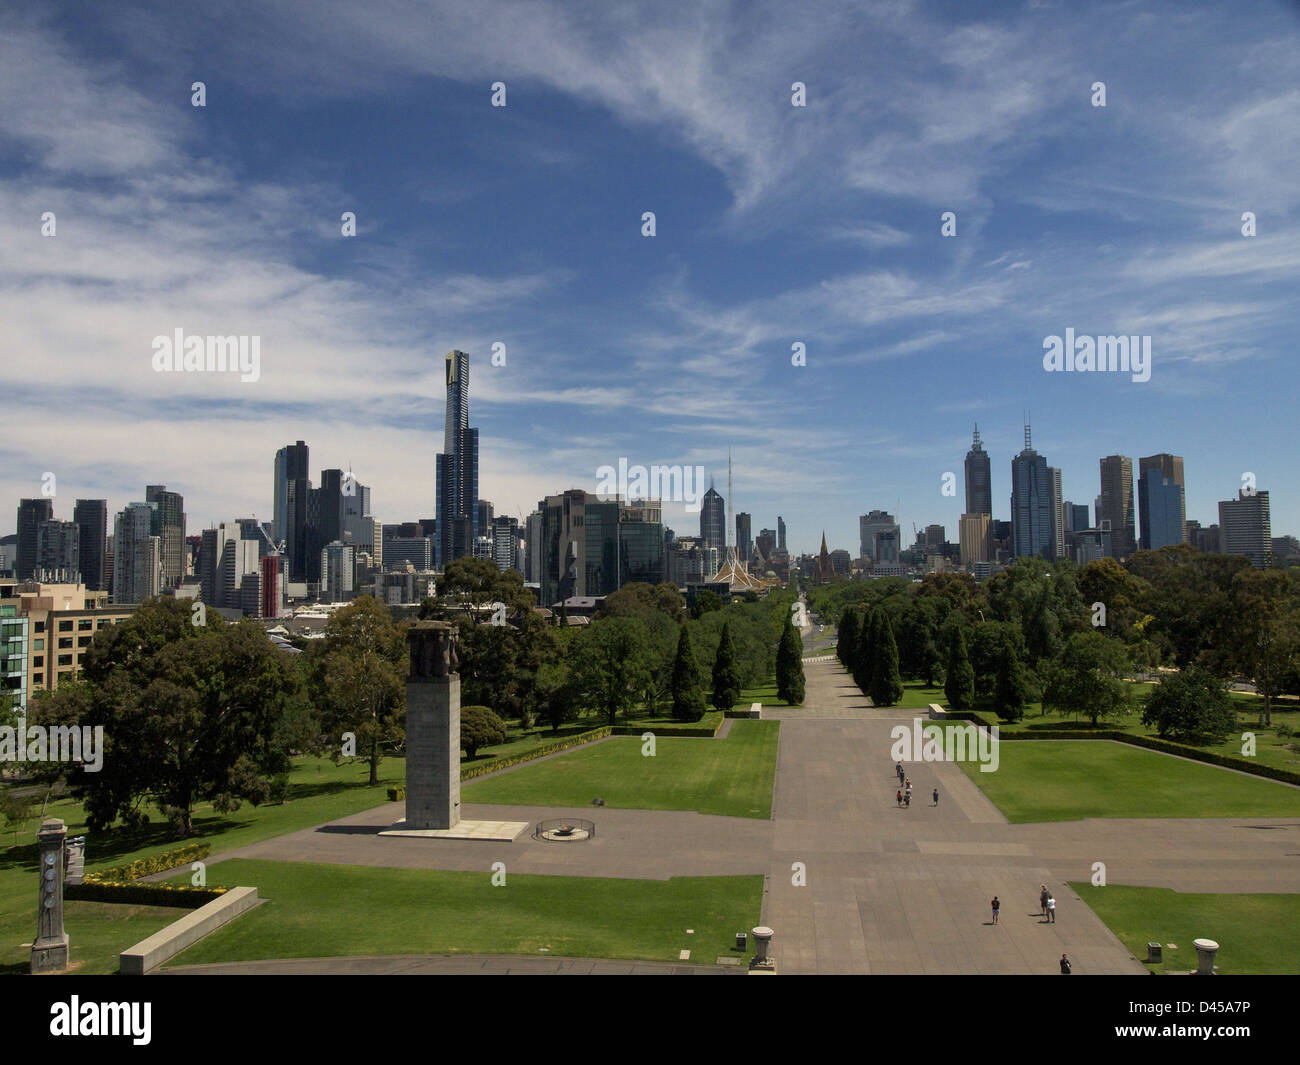 View from the Shrine of Remembrance Melbourne Victoria Australia - Stock Image